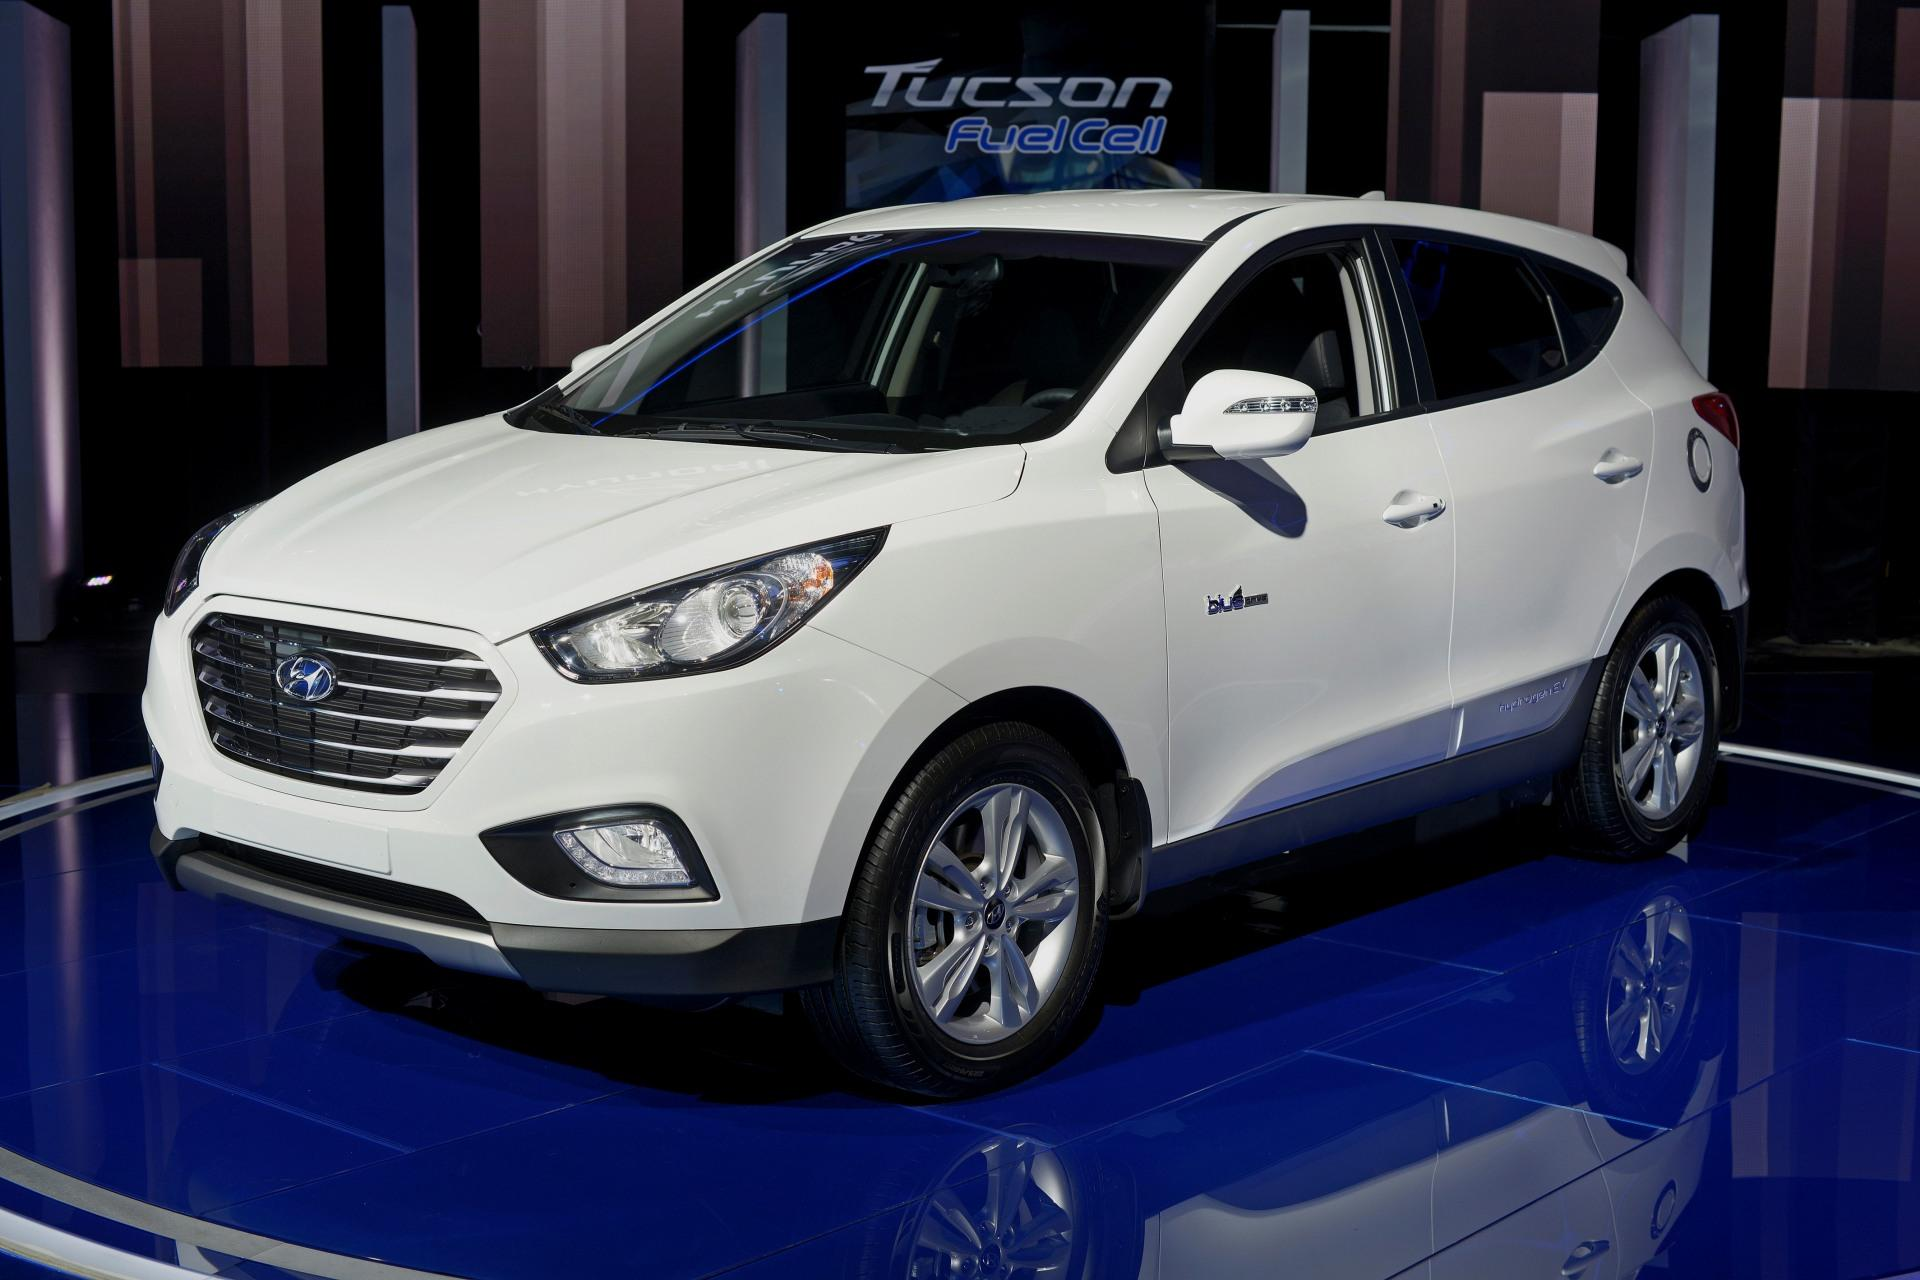 2015 hyundai tucson fuel cell technical specifications and data engine dimensions and. Black Bedroom Furniture Sets. Home Design Ideas